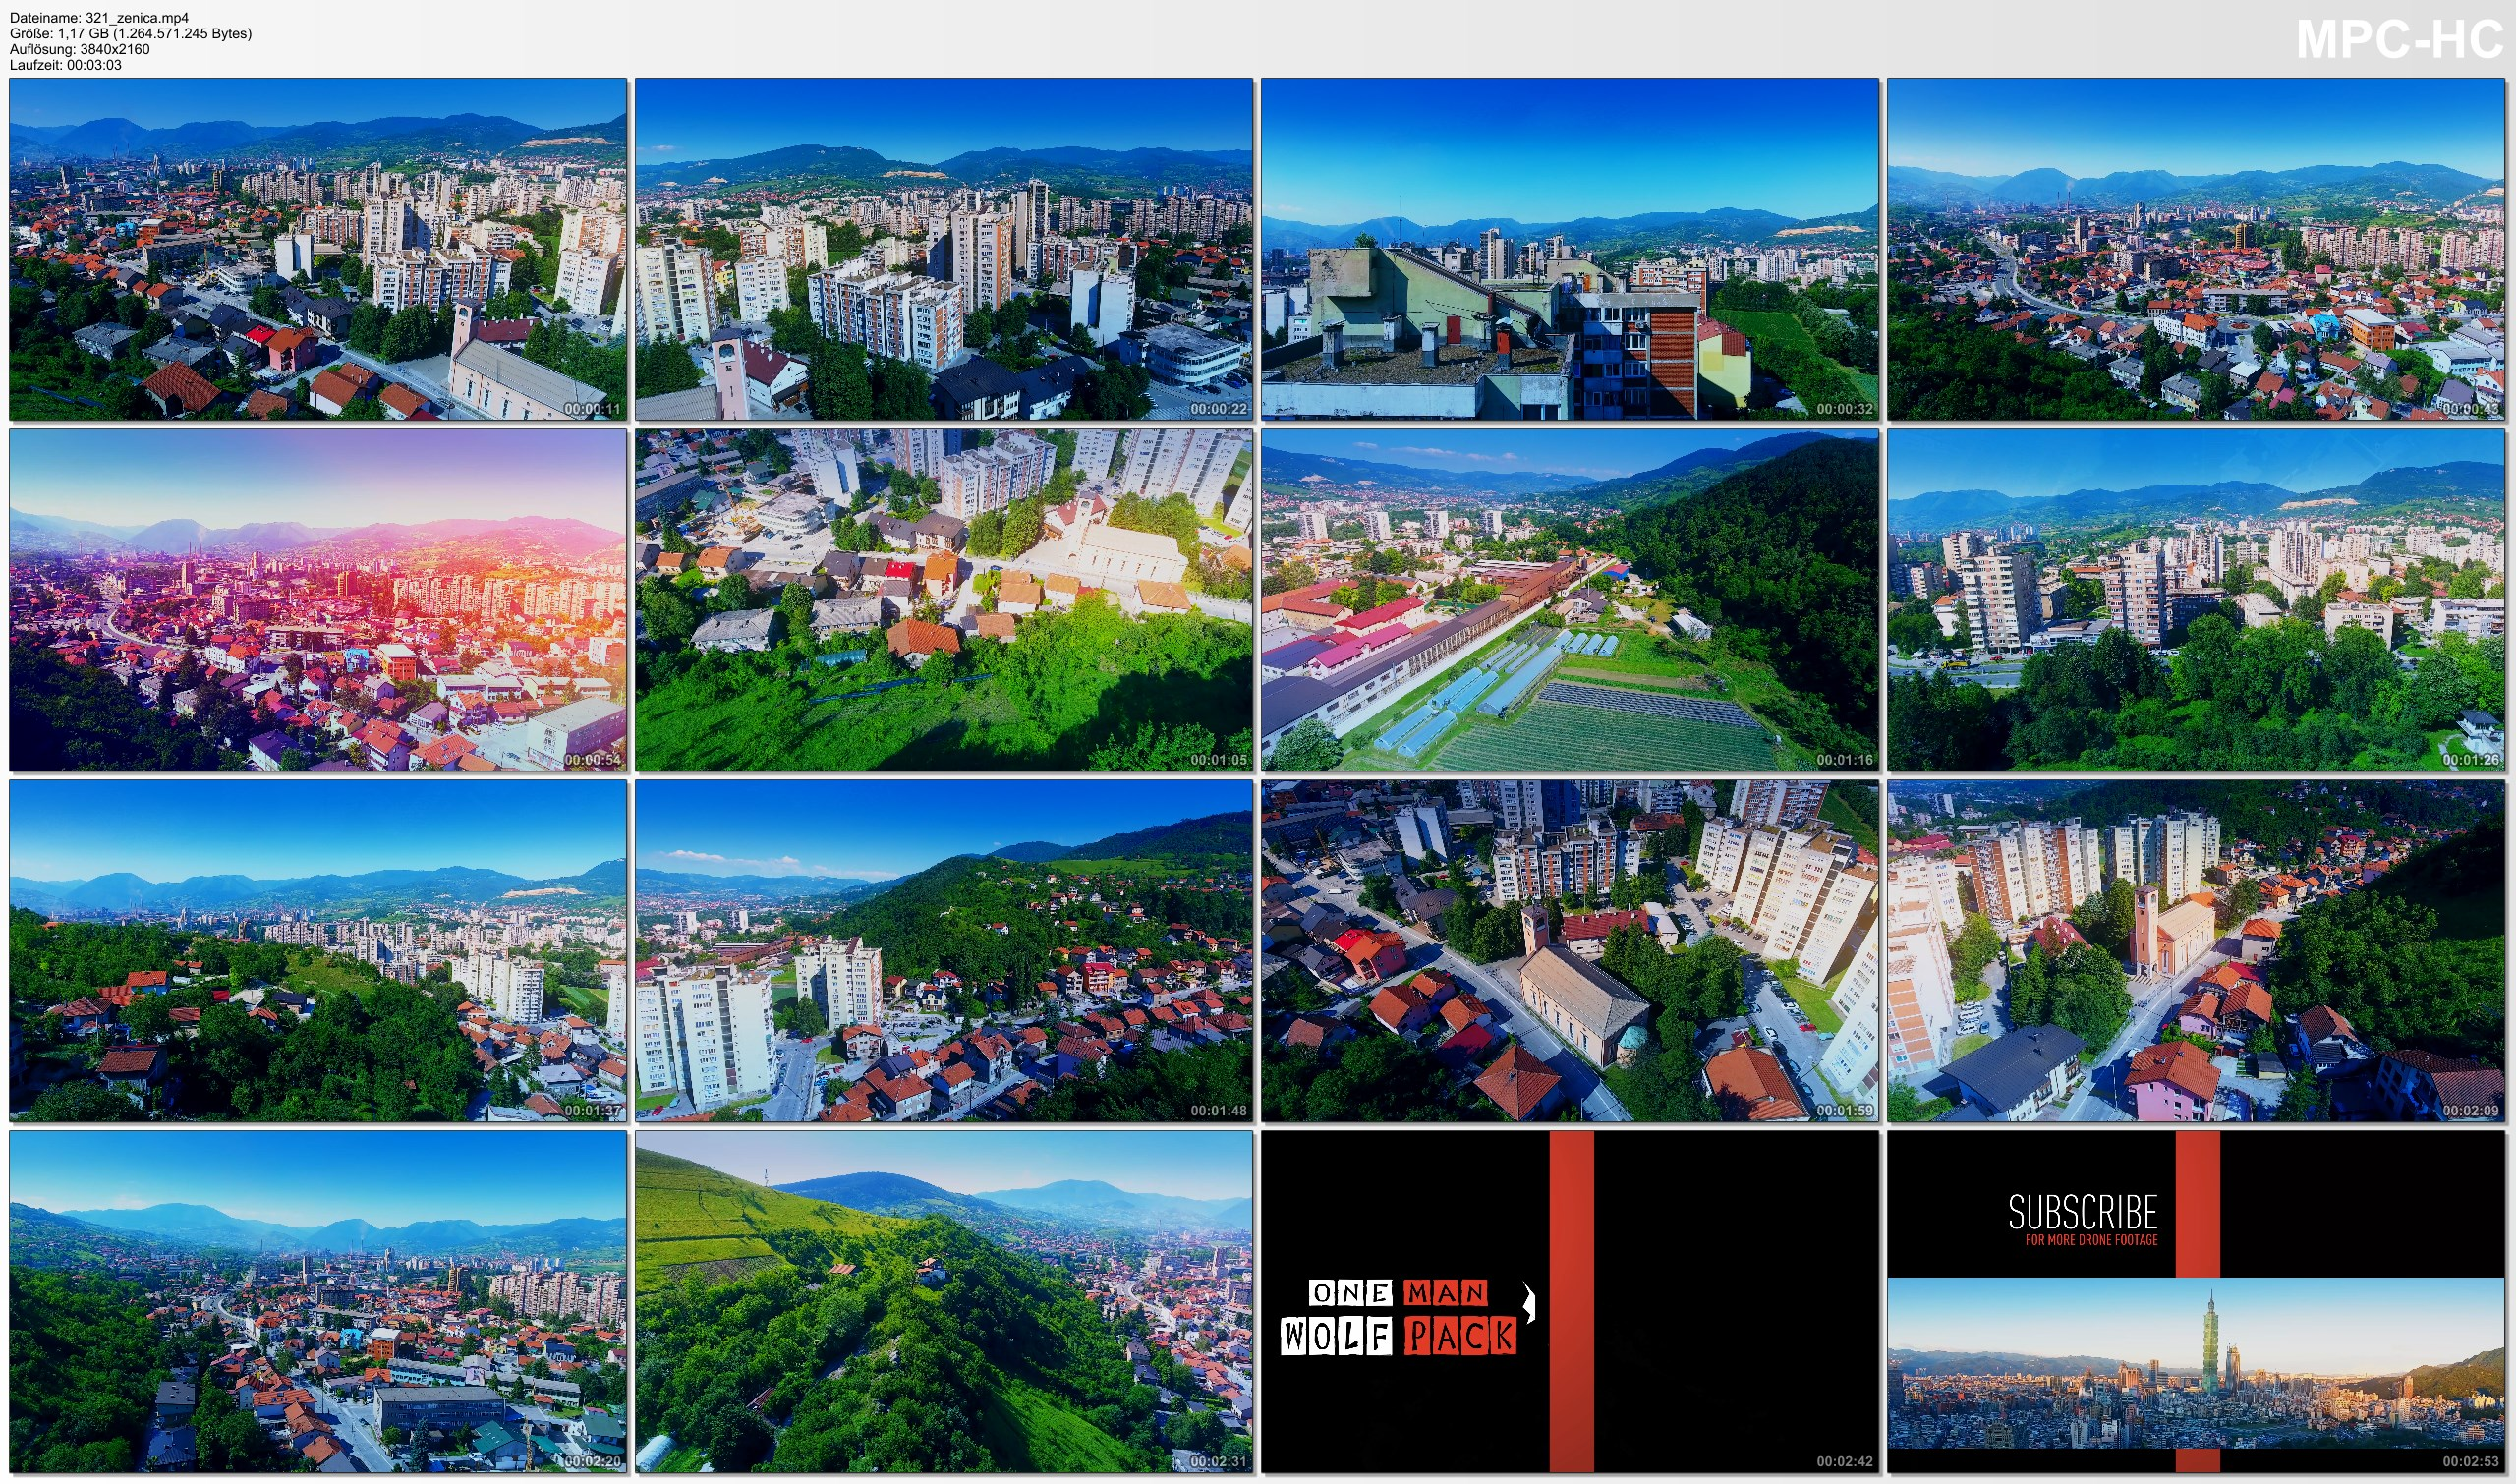 Drone Pictures from Video 【4K】Drone Footage   Zenica - City at the Bosnia River 2019 ..:: Cinematic Aerial Film   Herzegovina